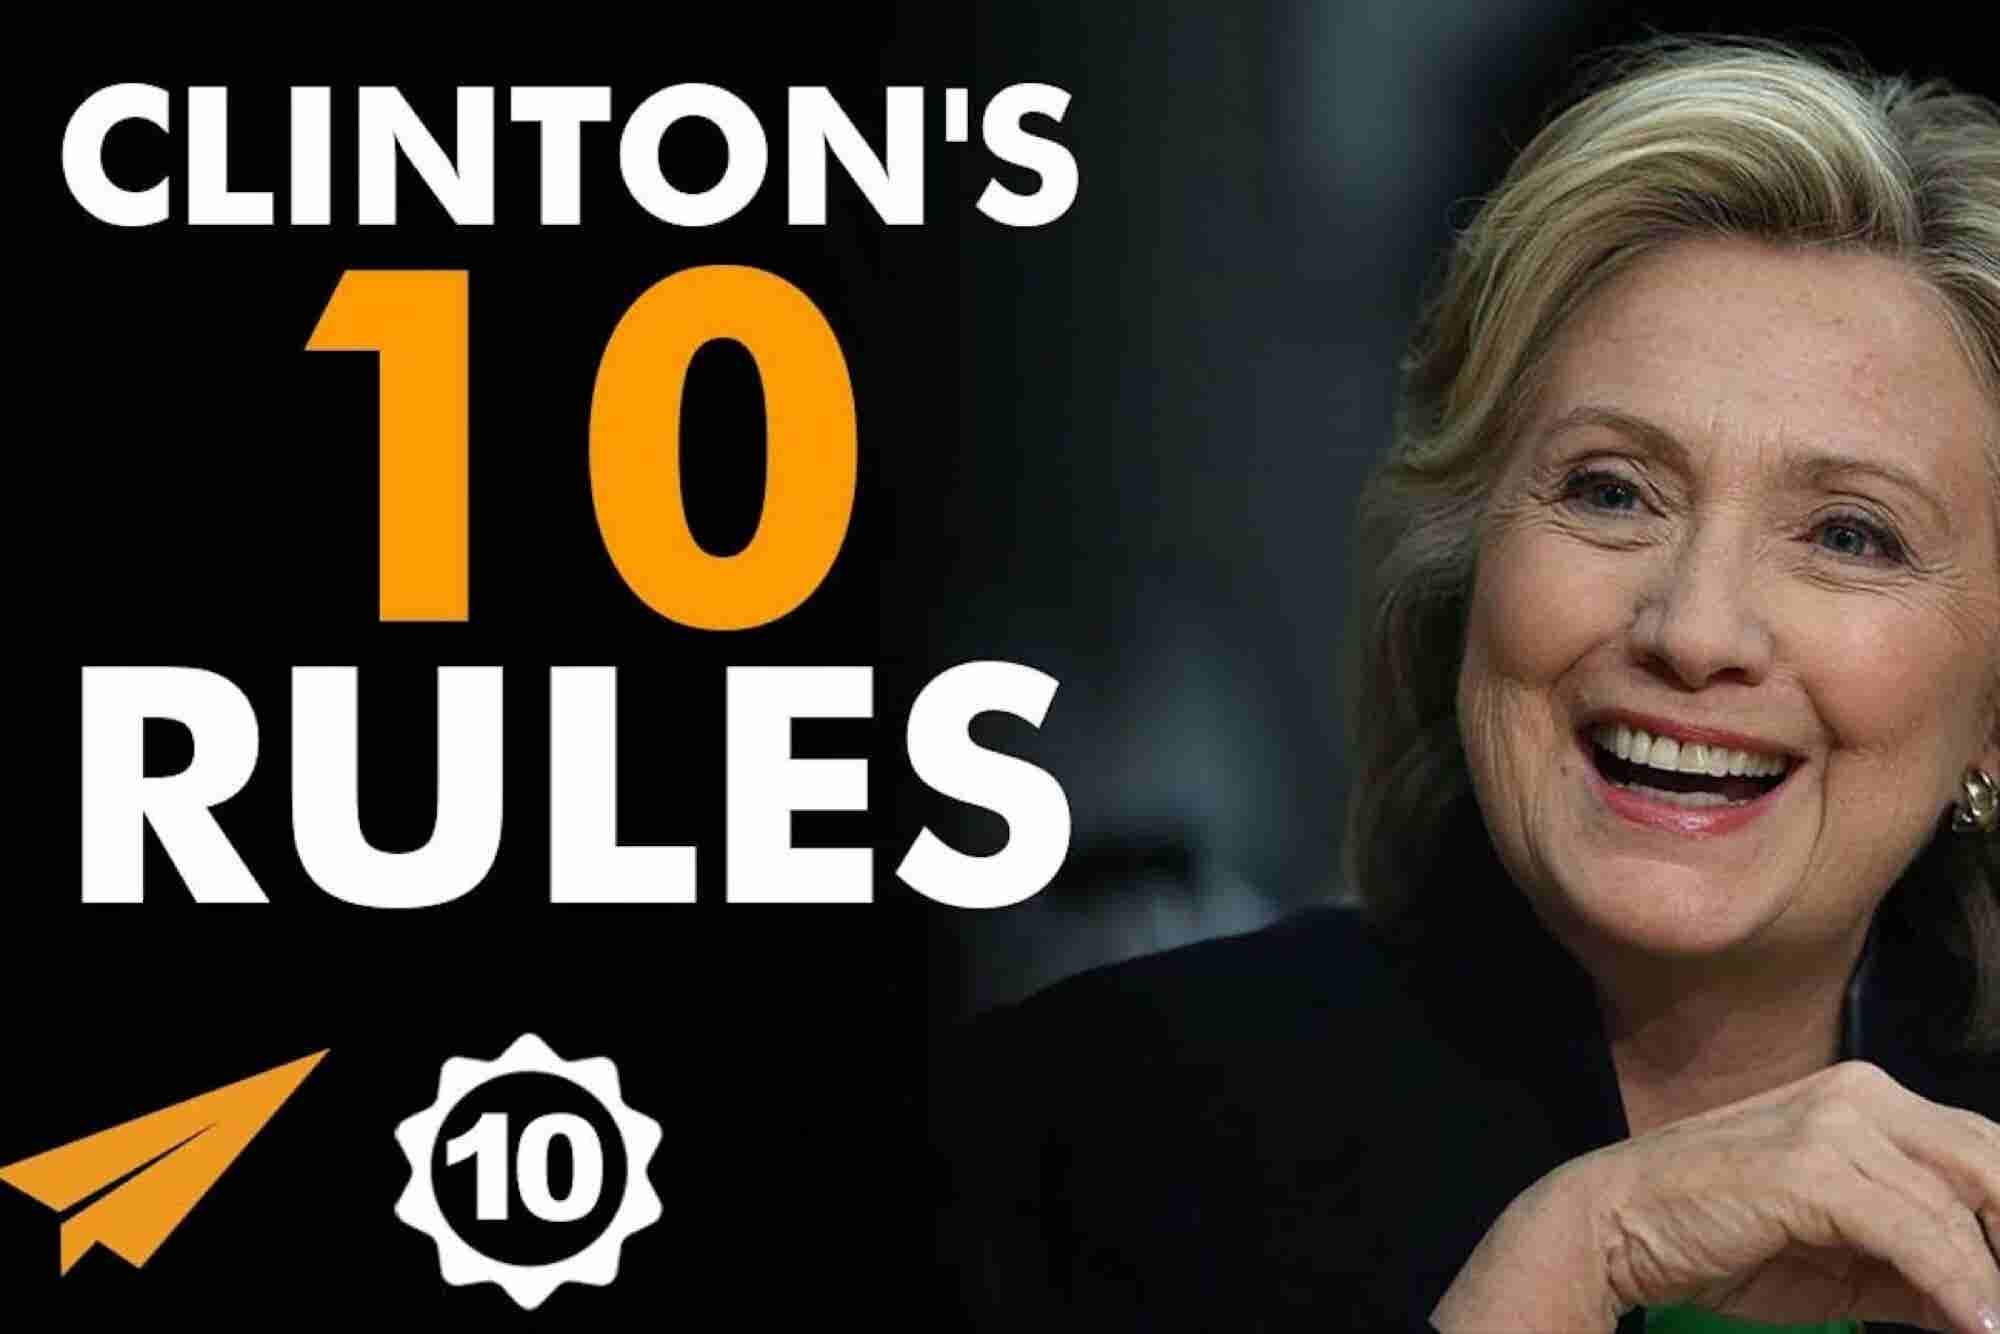 Hillary Clinton's Top 10 Rules for Success